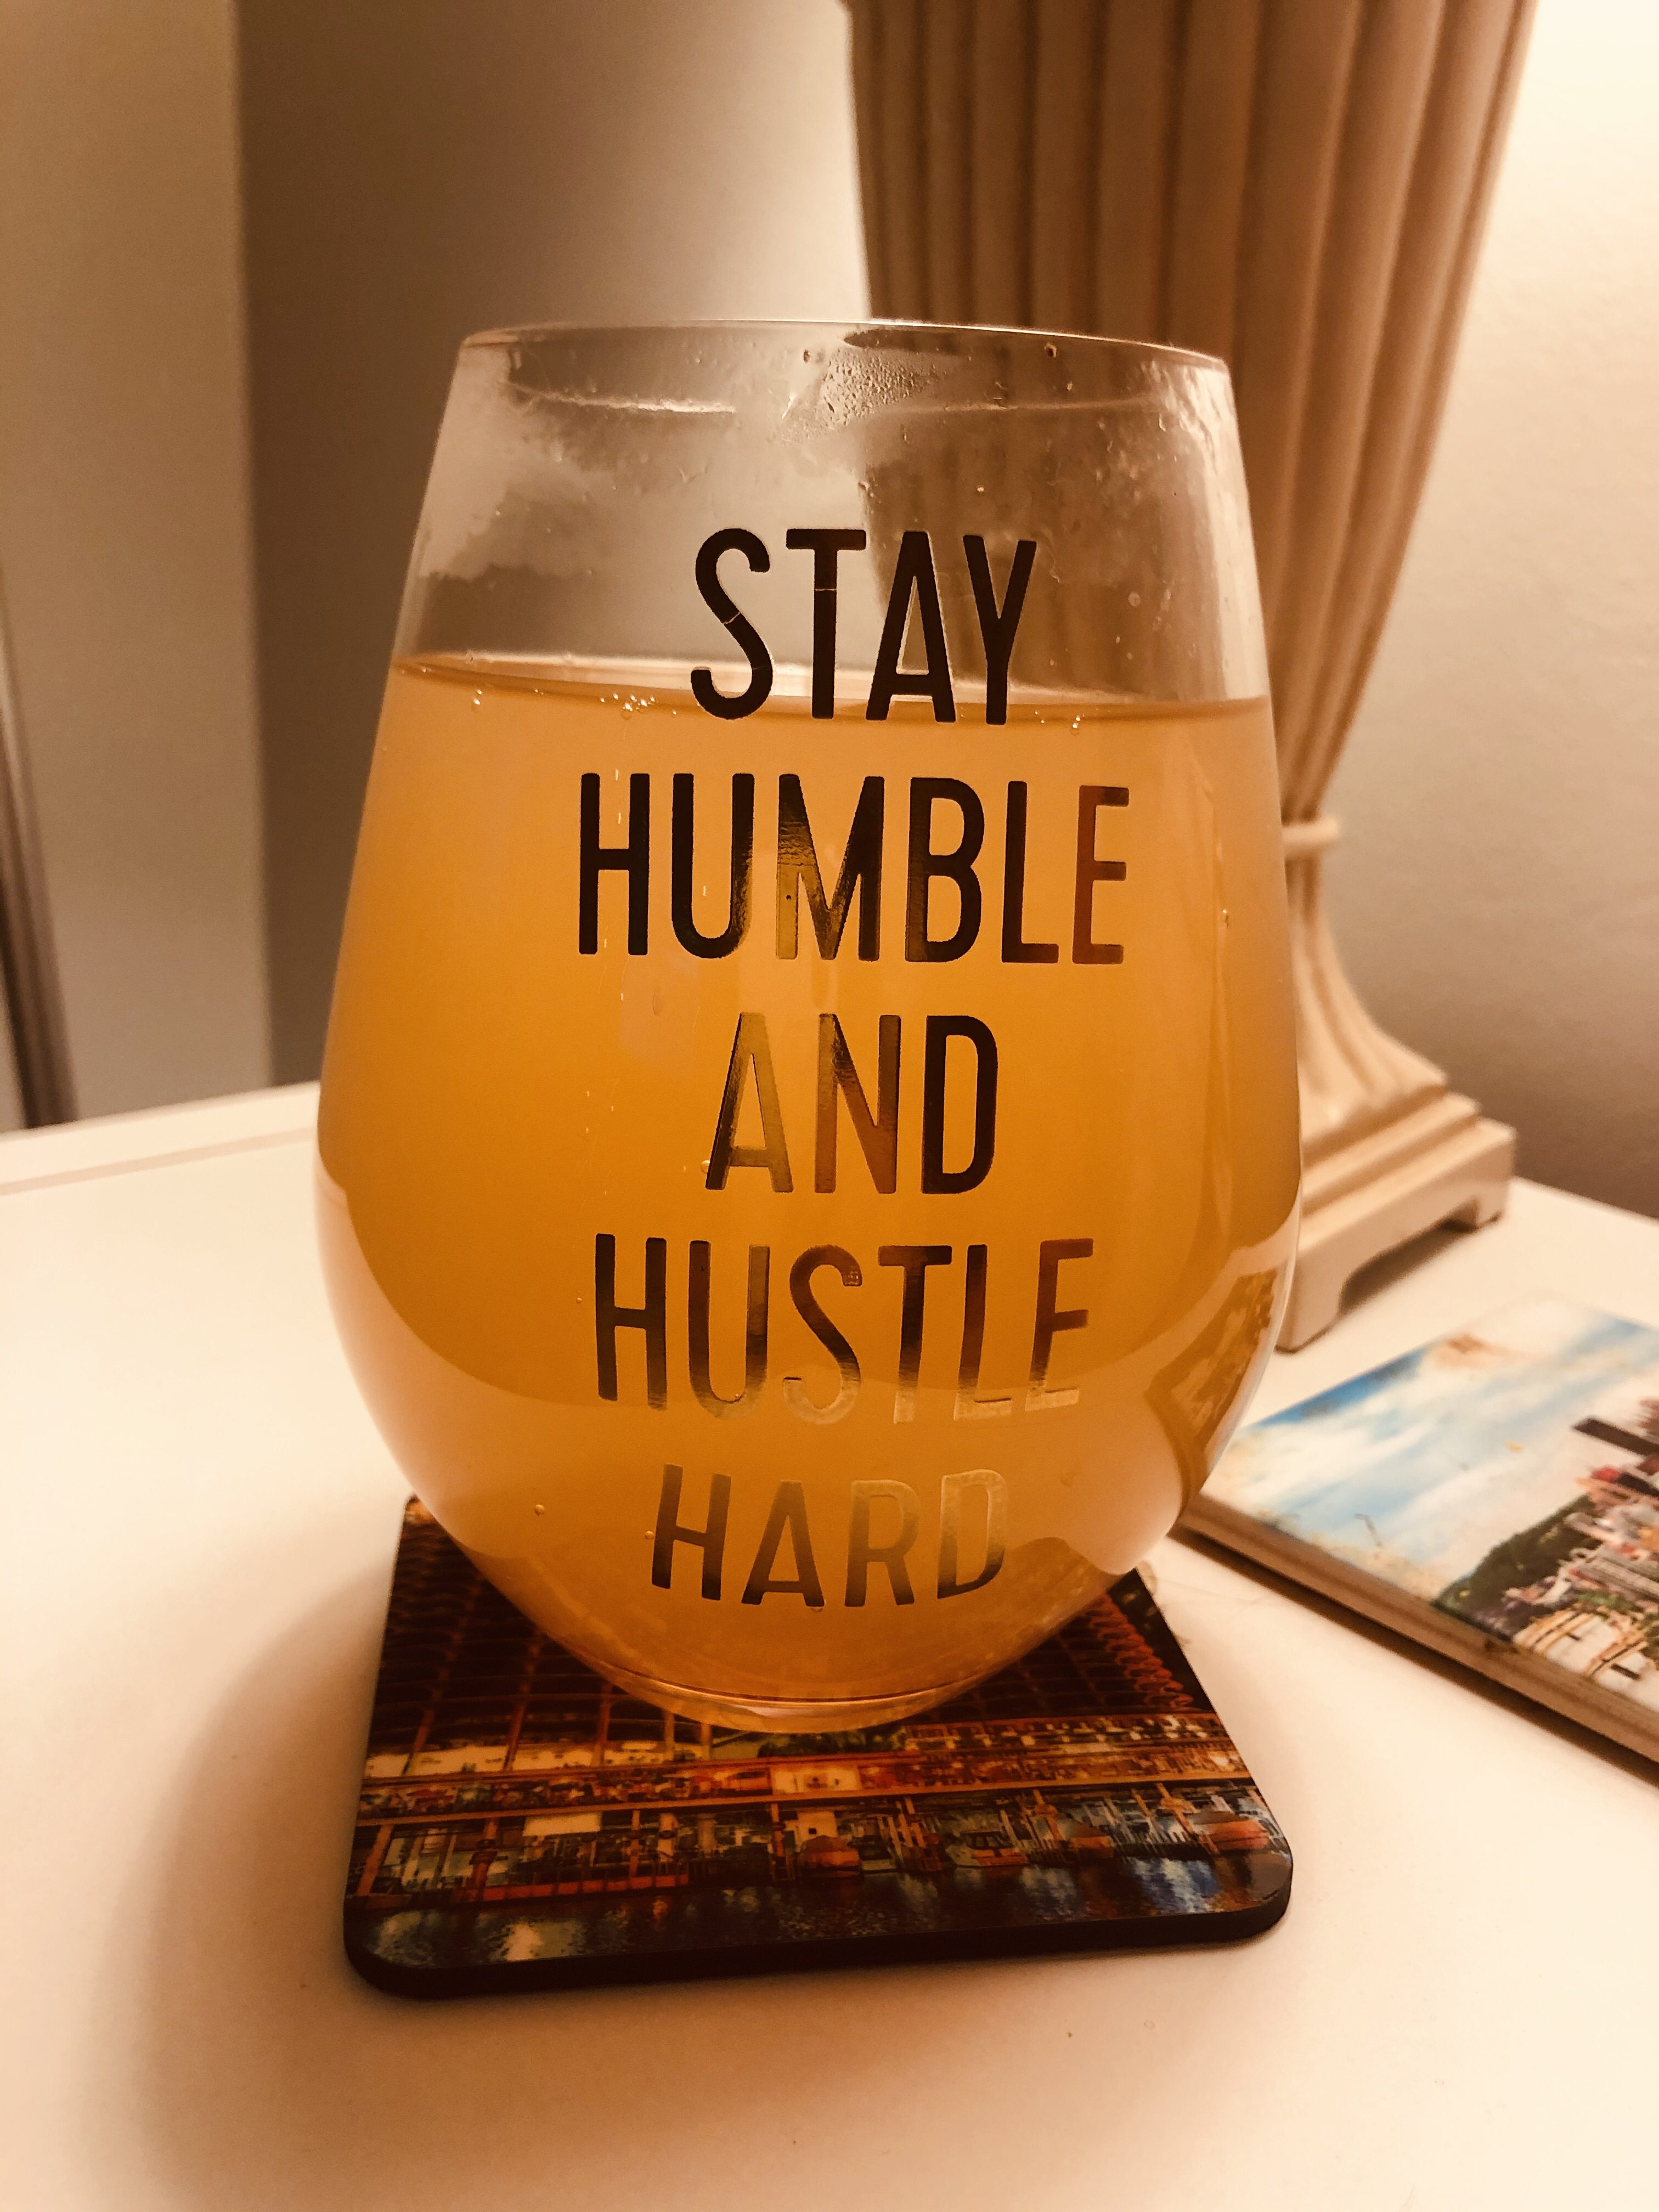 [Image] Motivational cider